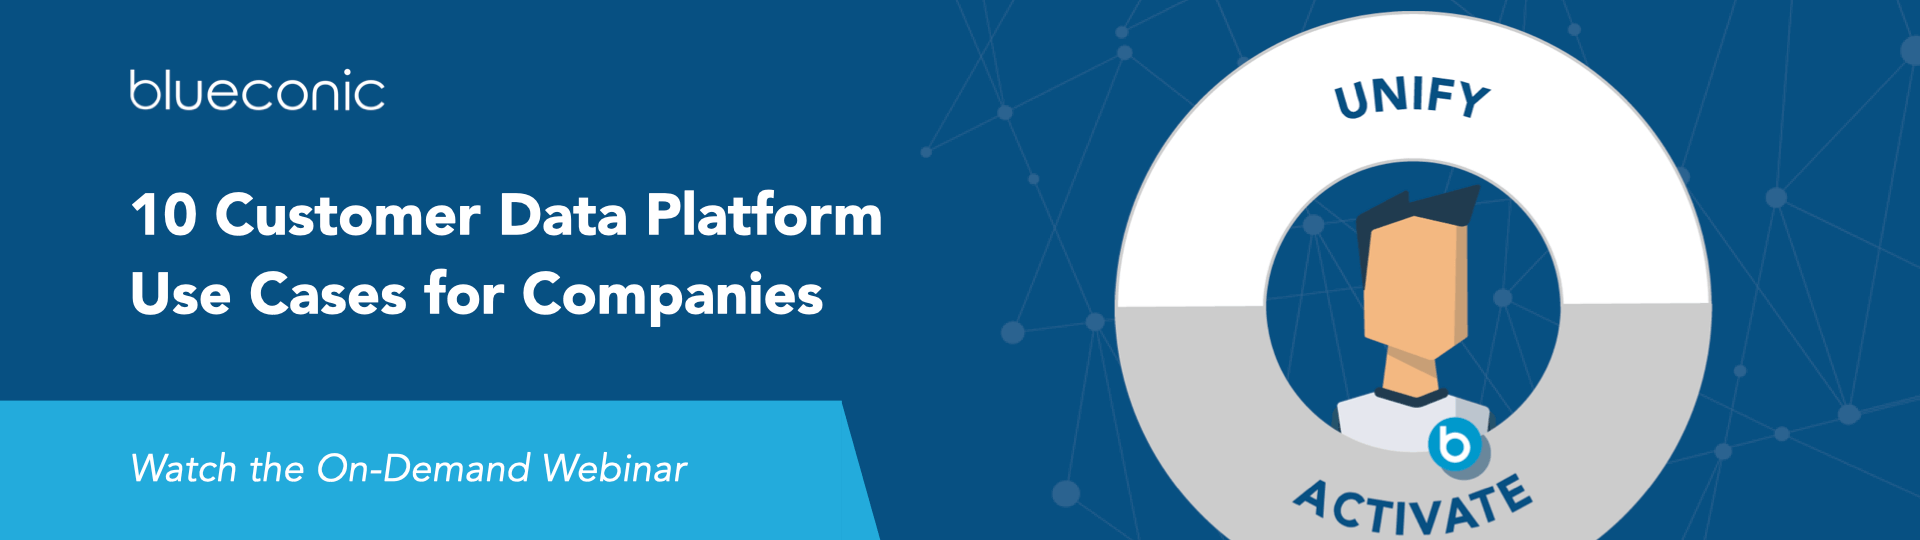 customer data platform use cases